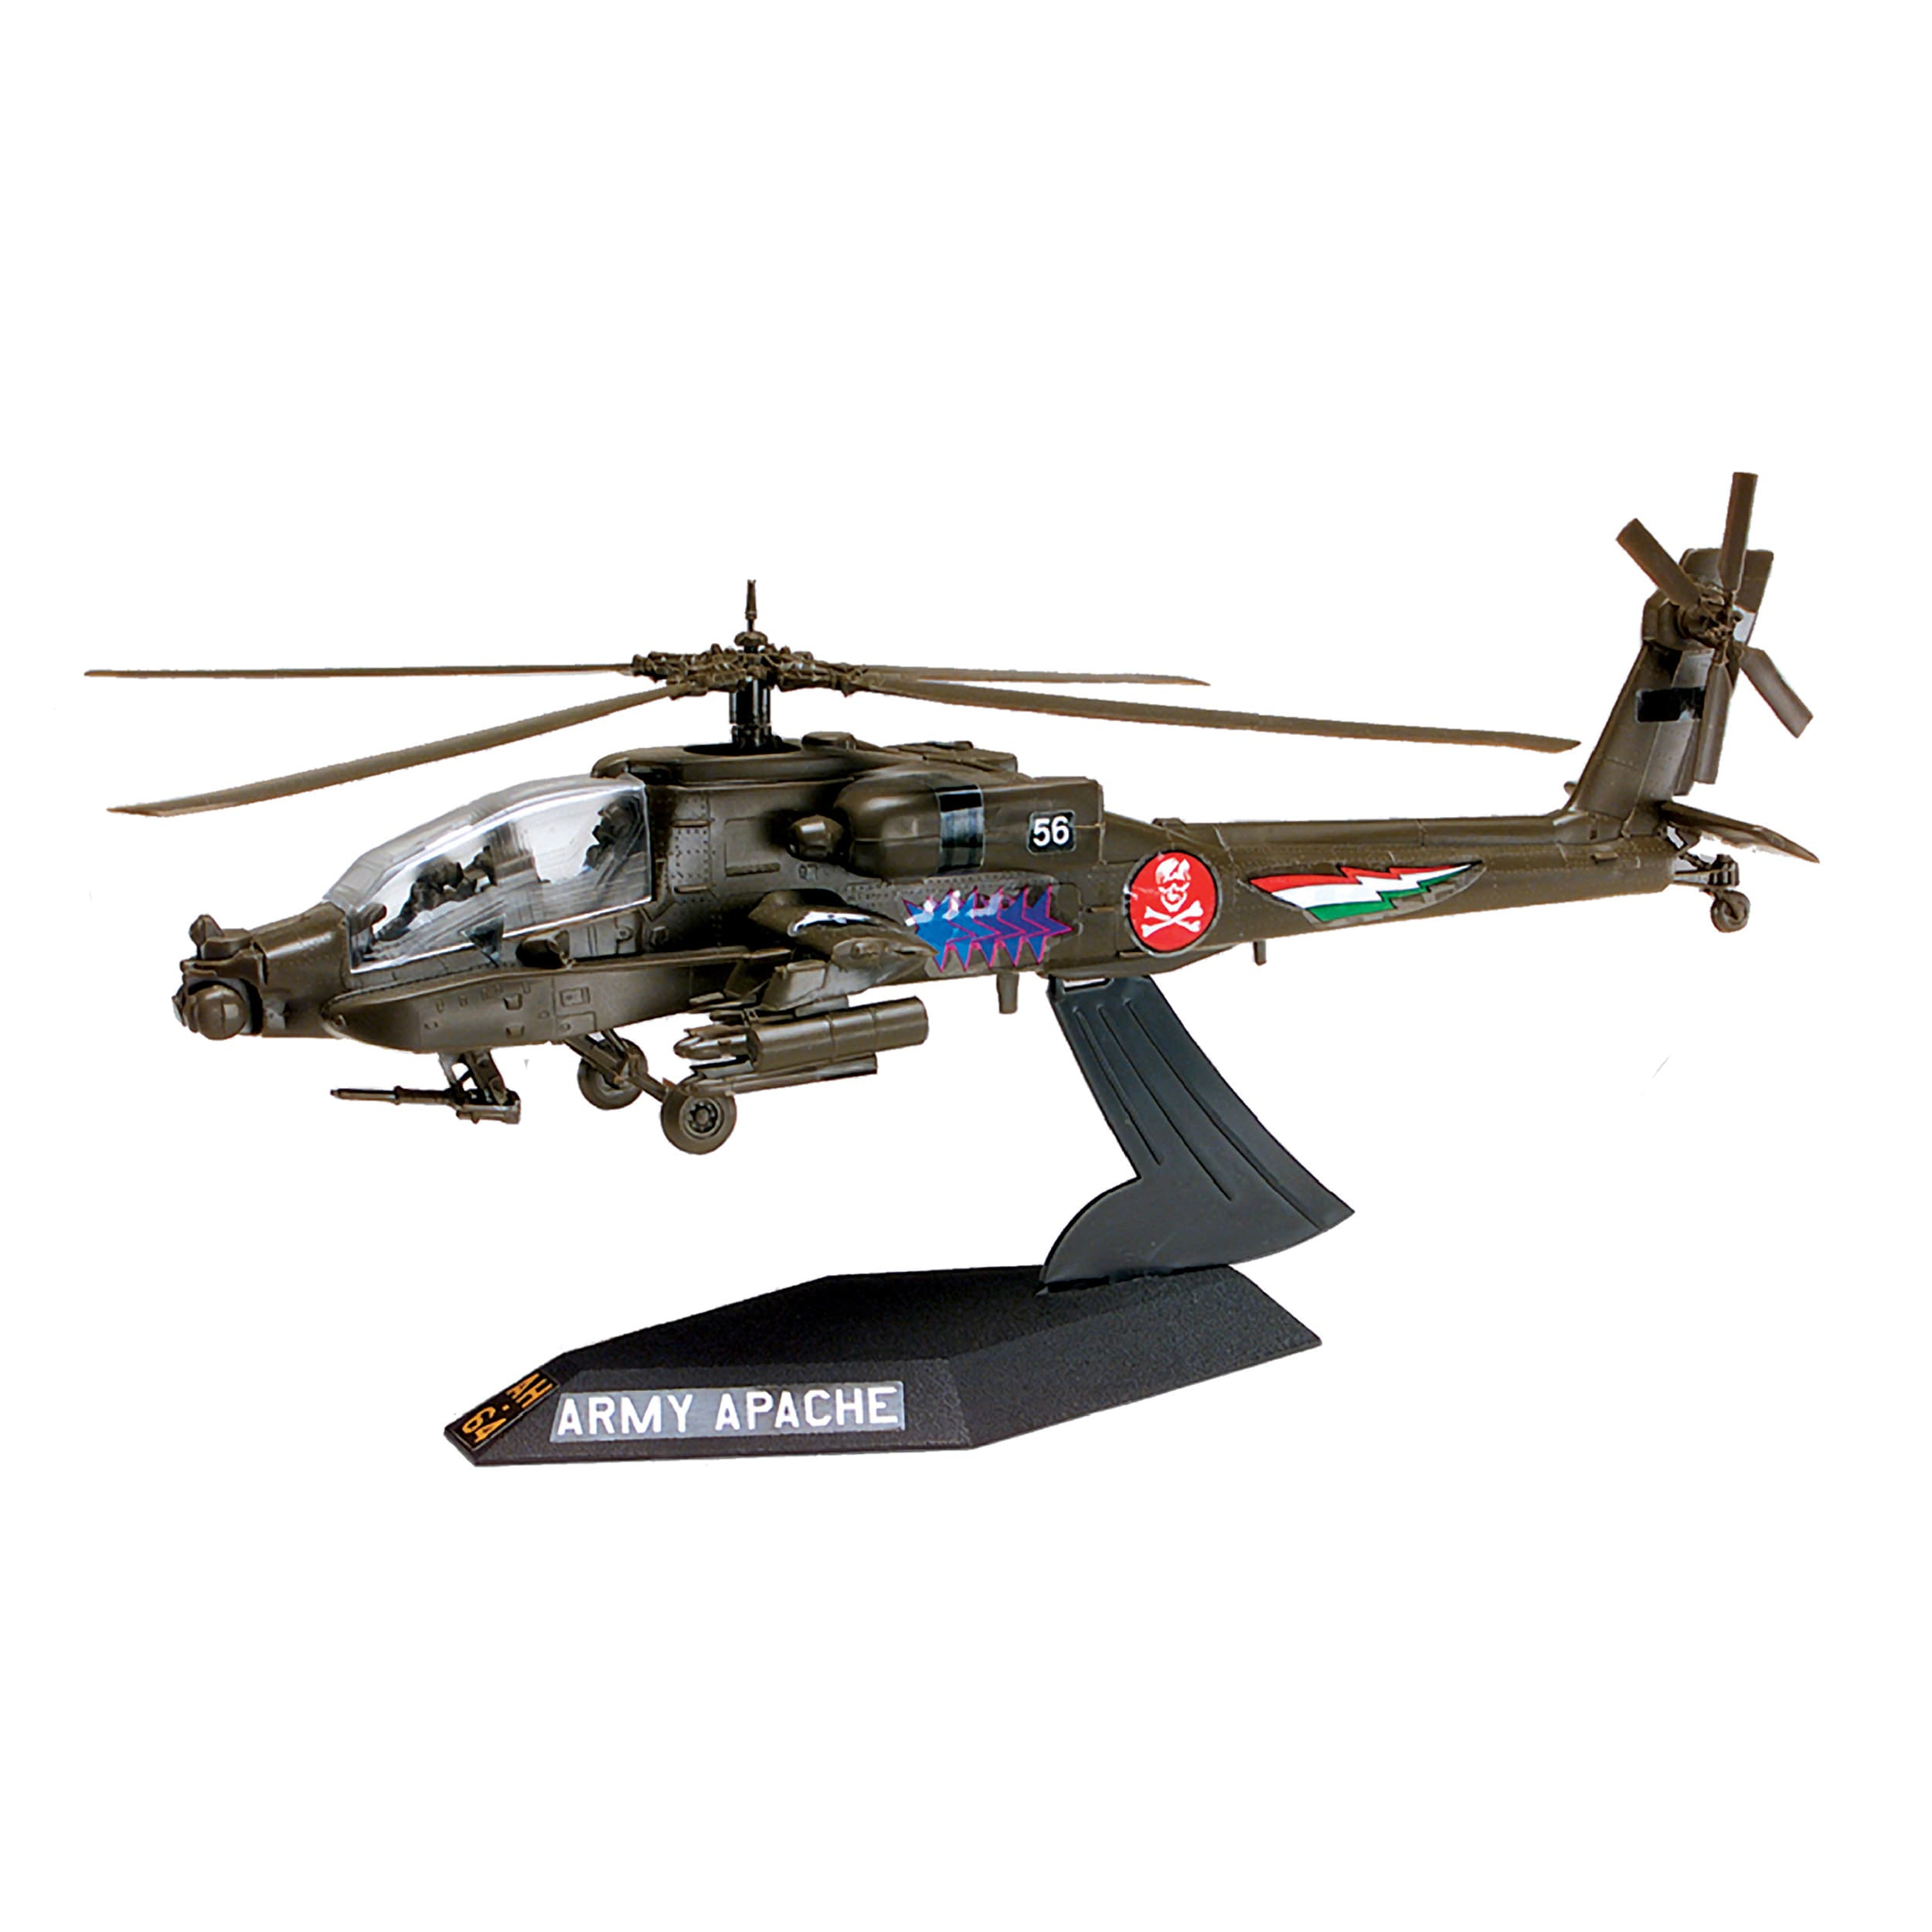 Revell-Monogram Revell Plastic Model Kit-AH-64 Apache Helicopter Desktop 1:72 at Sears.com